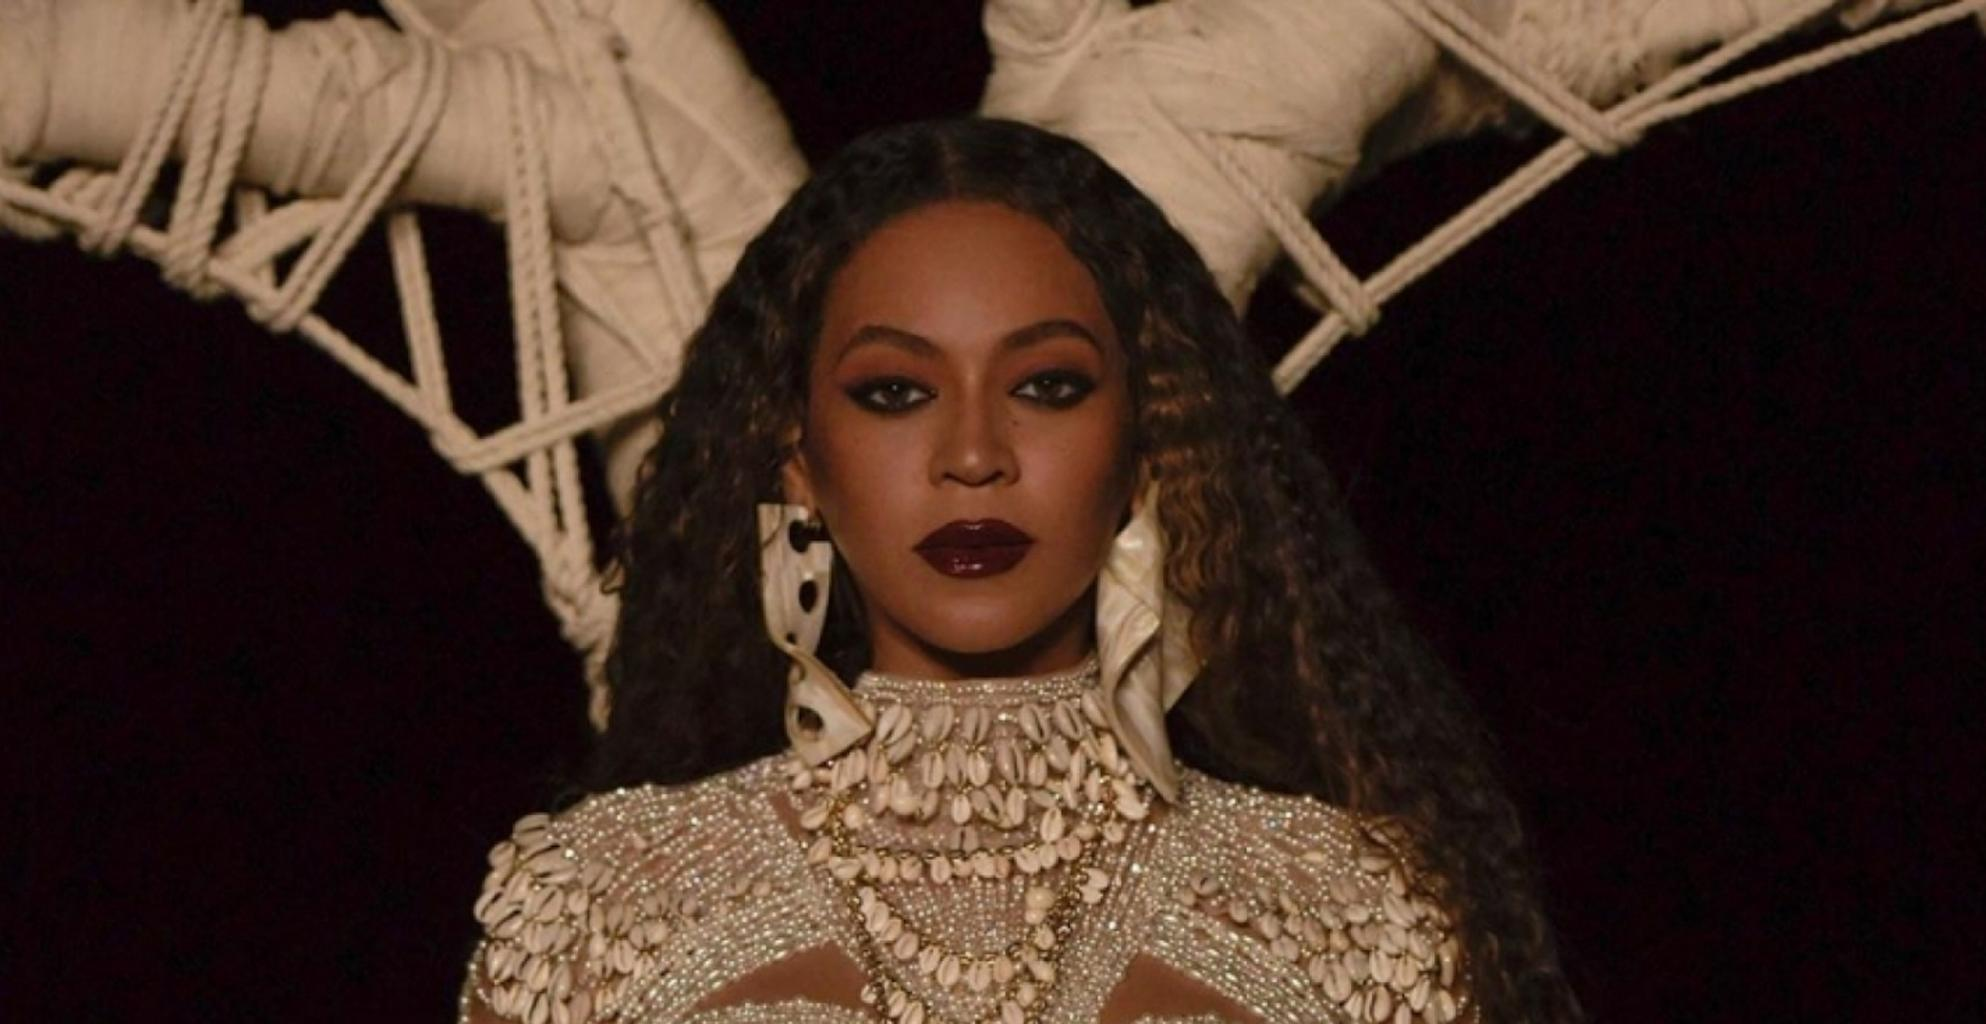 Beyonce Offers Her Gratitude To Everyone Working To Fight The Coronavirus Pandemic